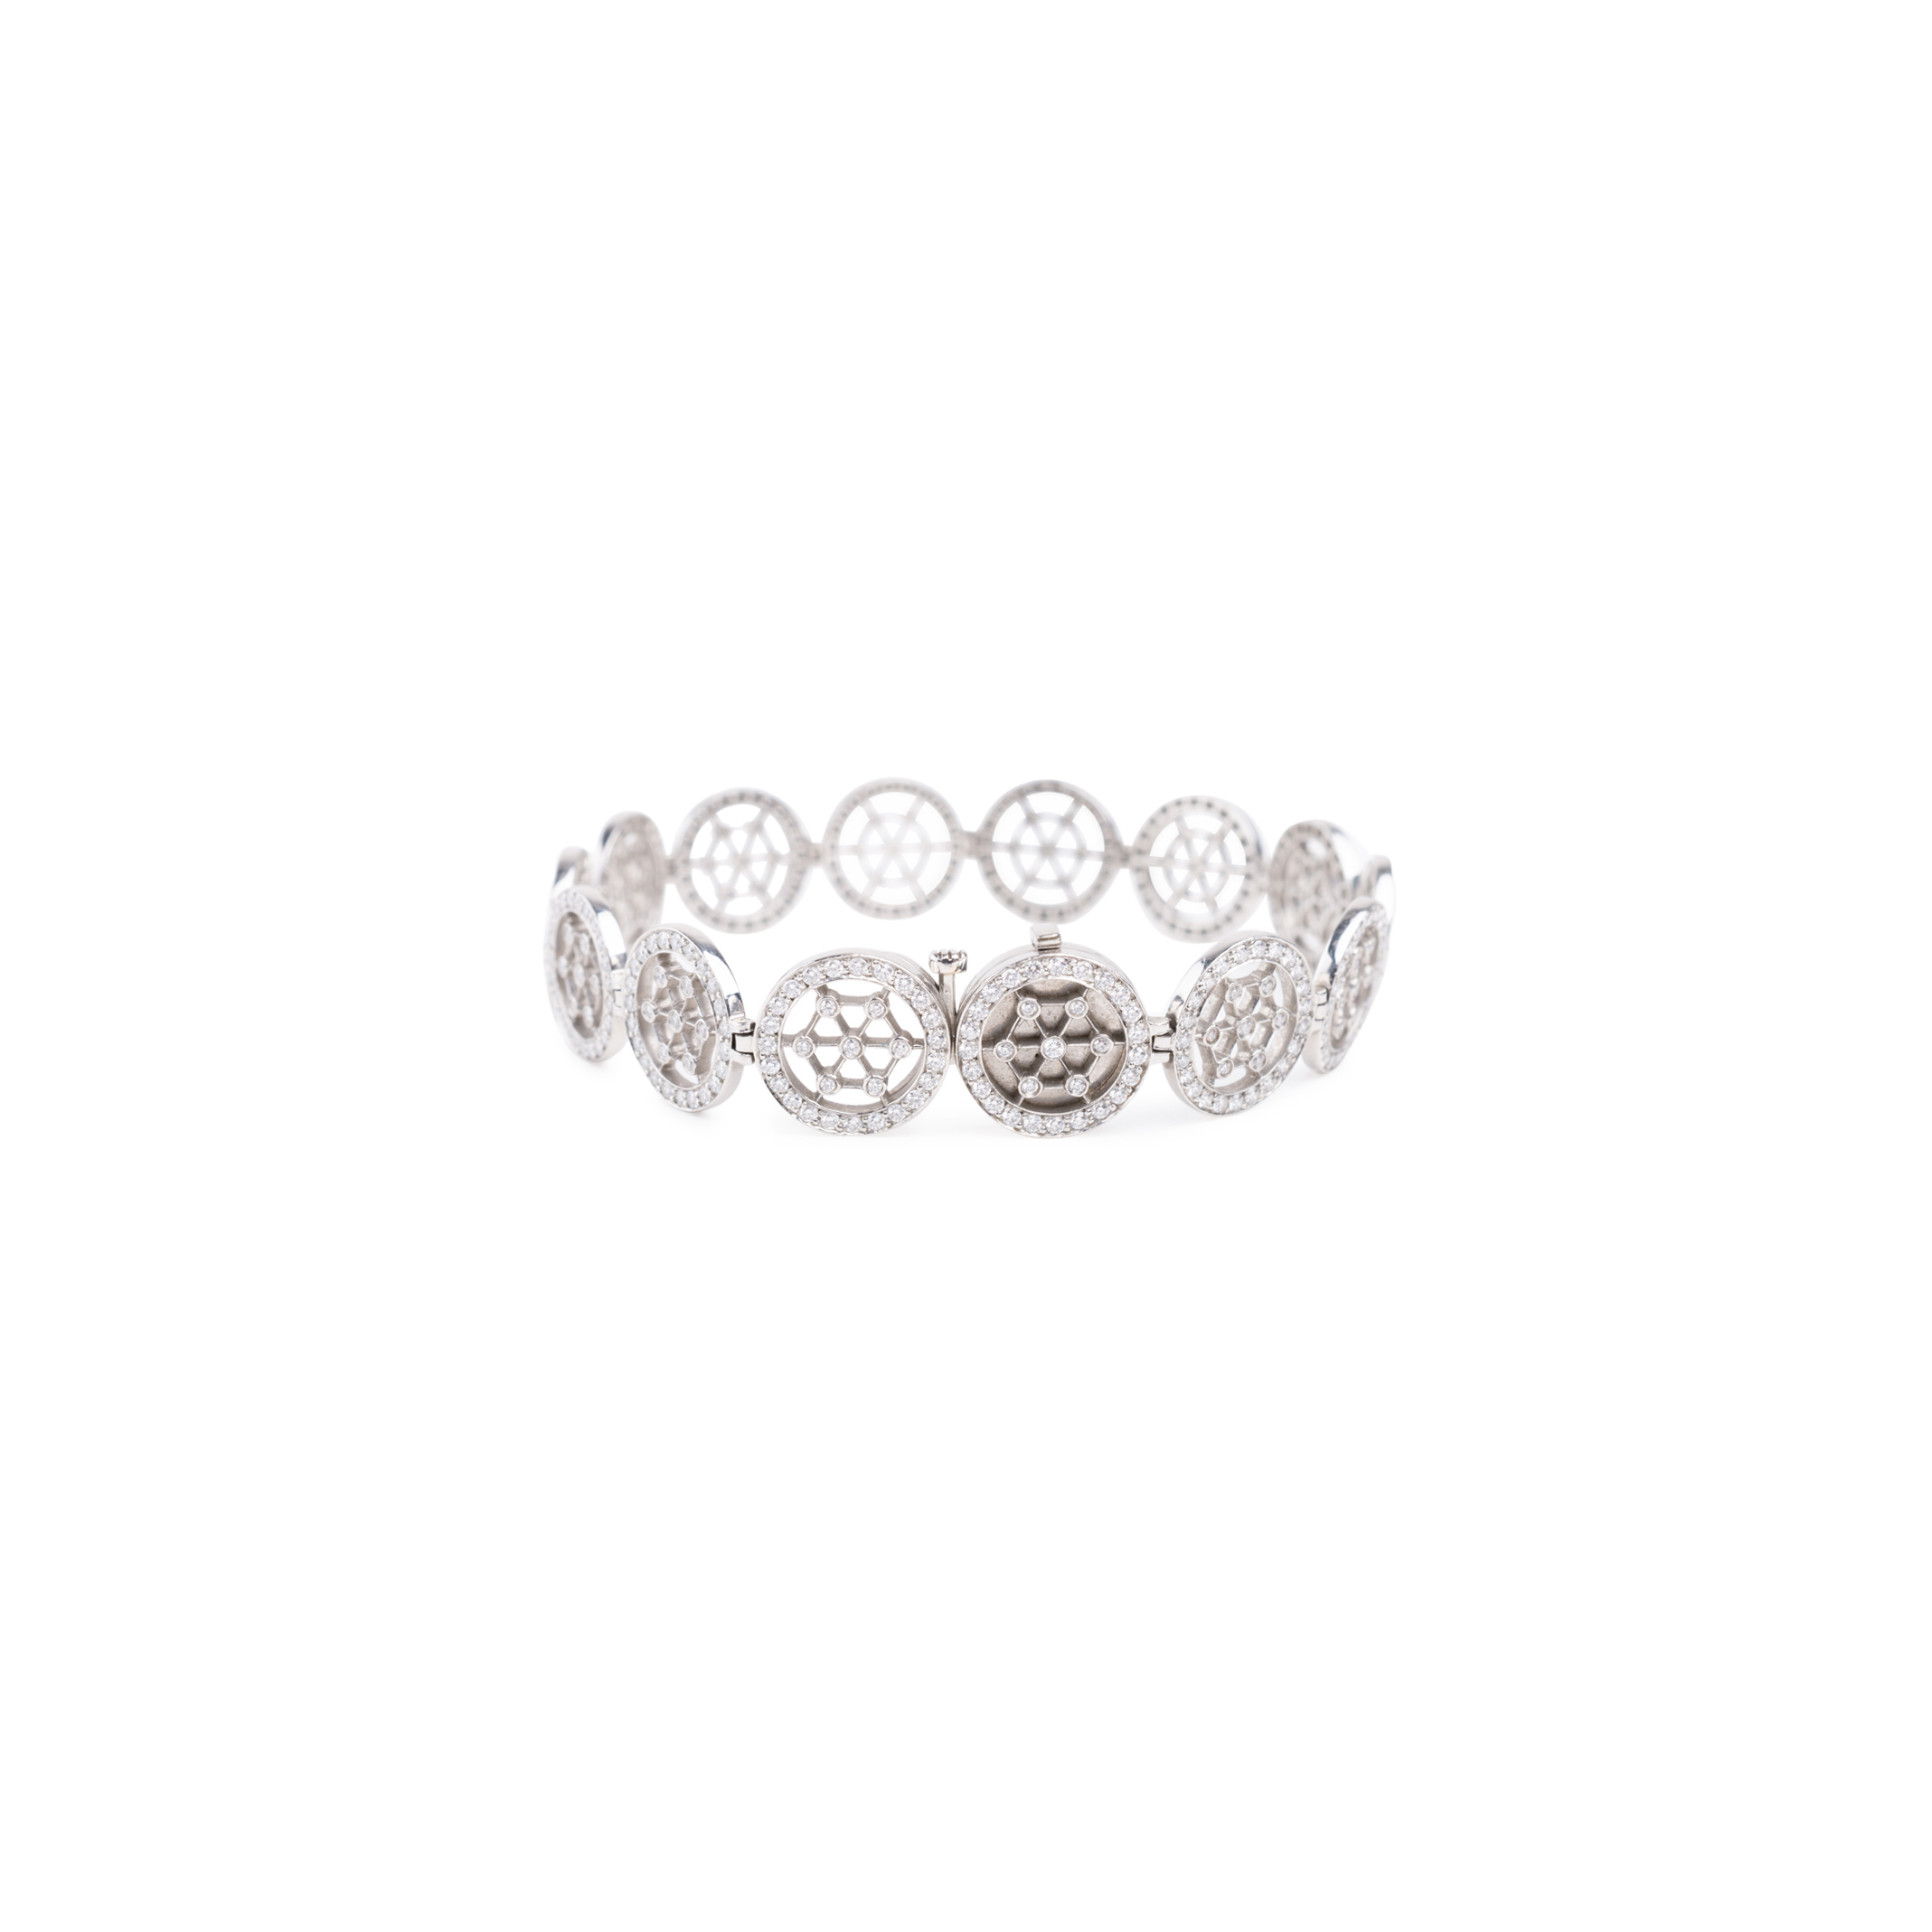 Authentic Second Hand Tiffany Co Diamond Tennis Bracelet Pss 622 00006 The Fifth Collection